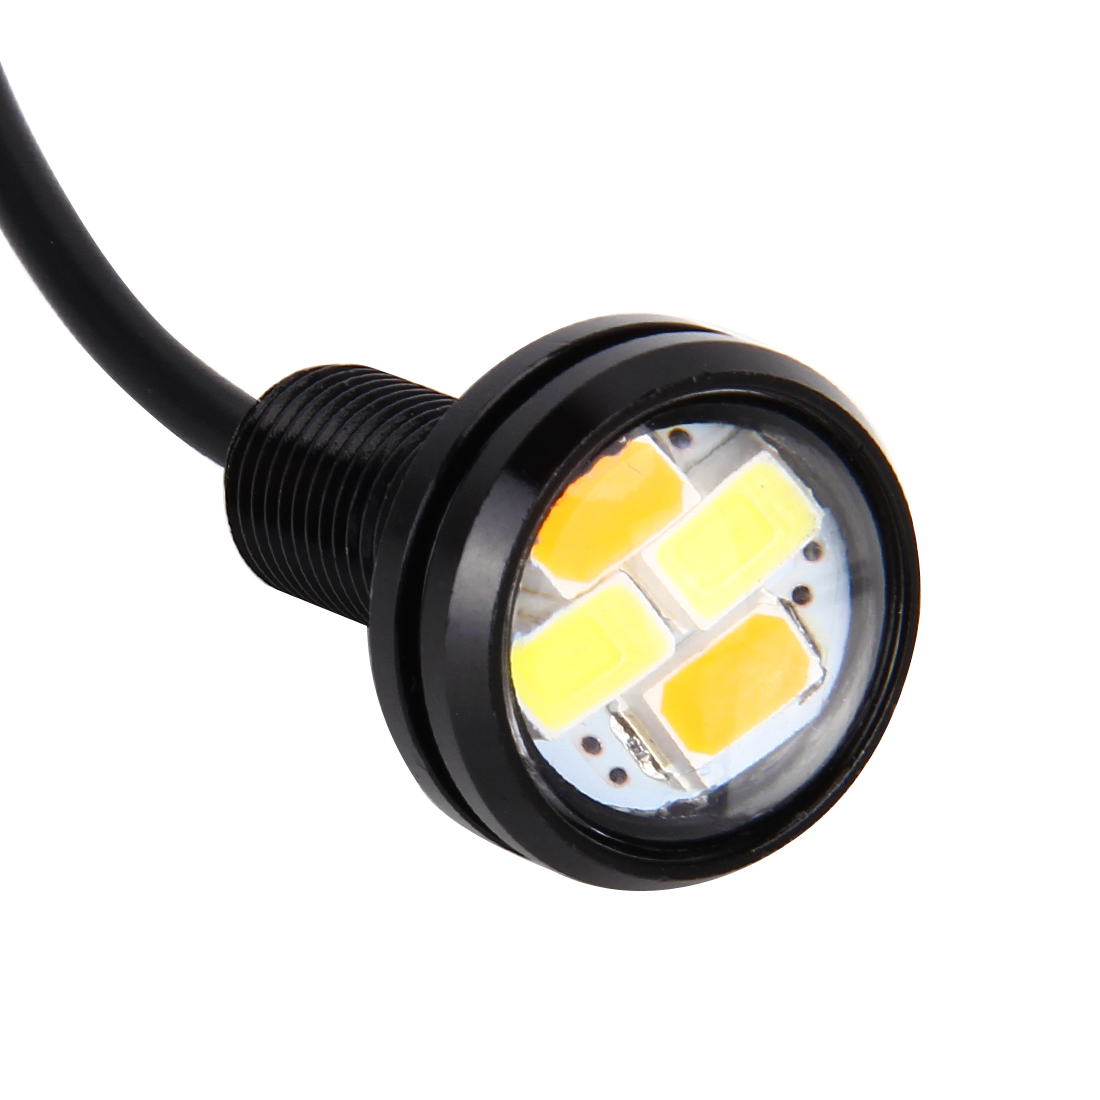 20w Smd Led 12v: 10 PCS 20W 4 LEDs SMD 5630 White Light + Yellow Light